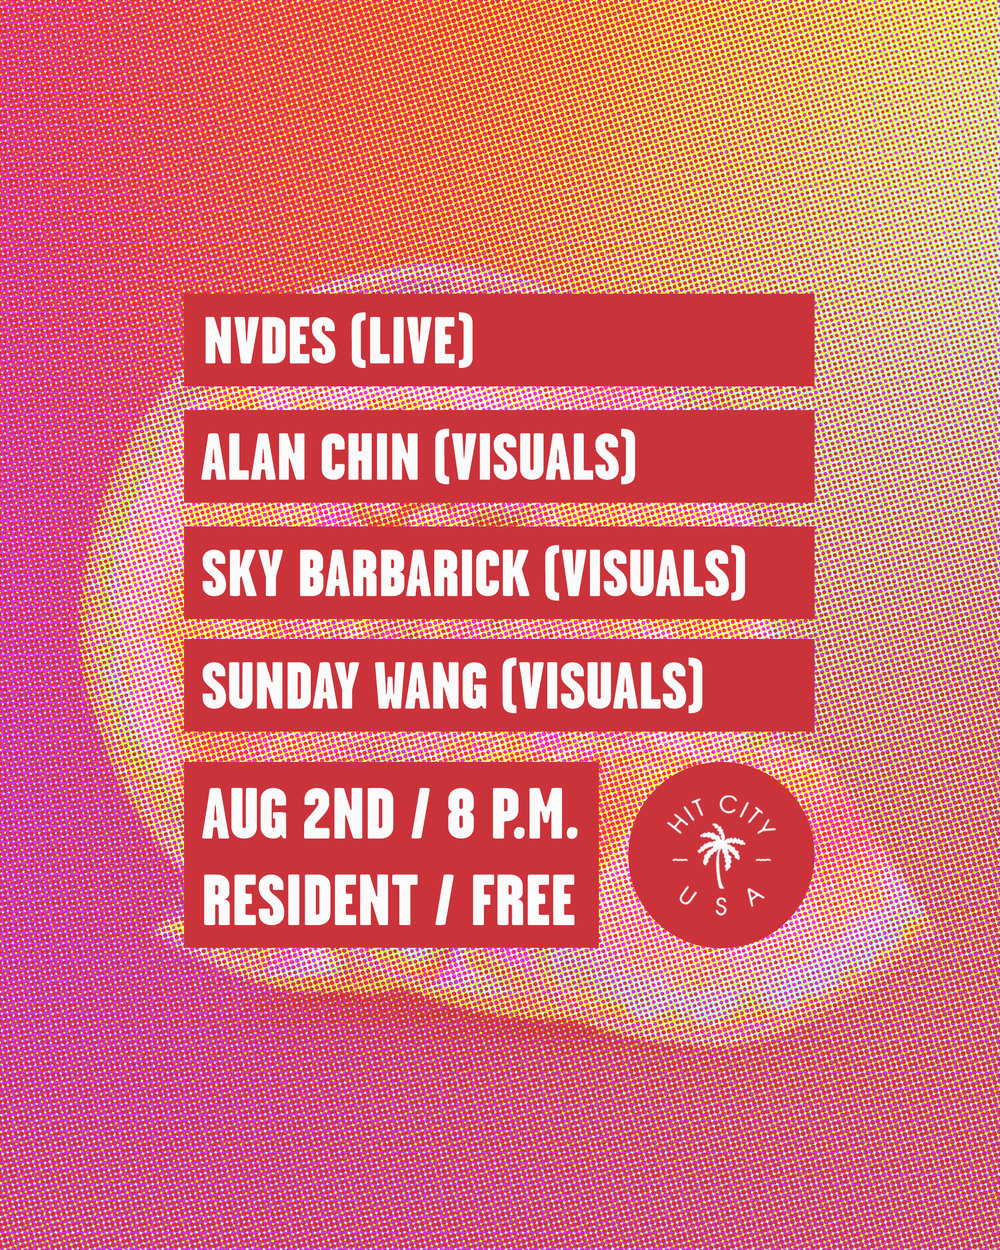 NVDES Live at Resident